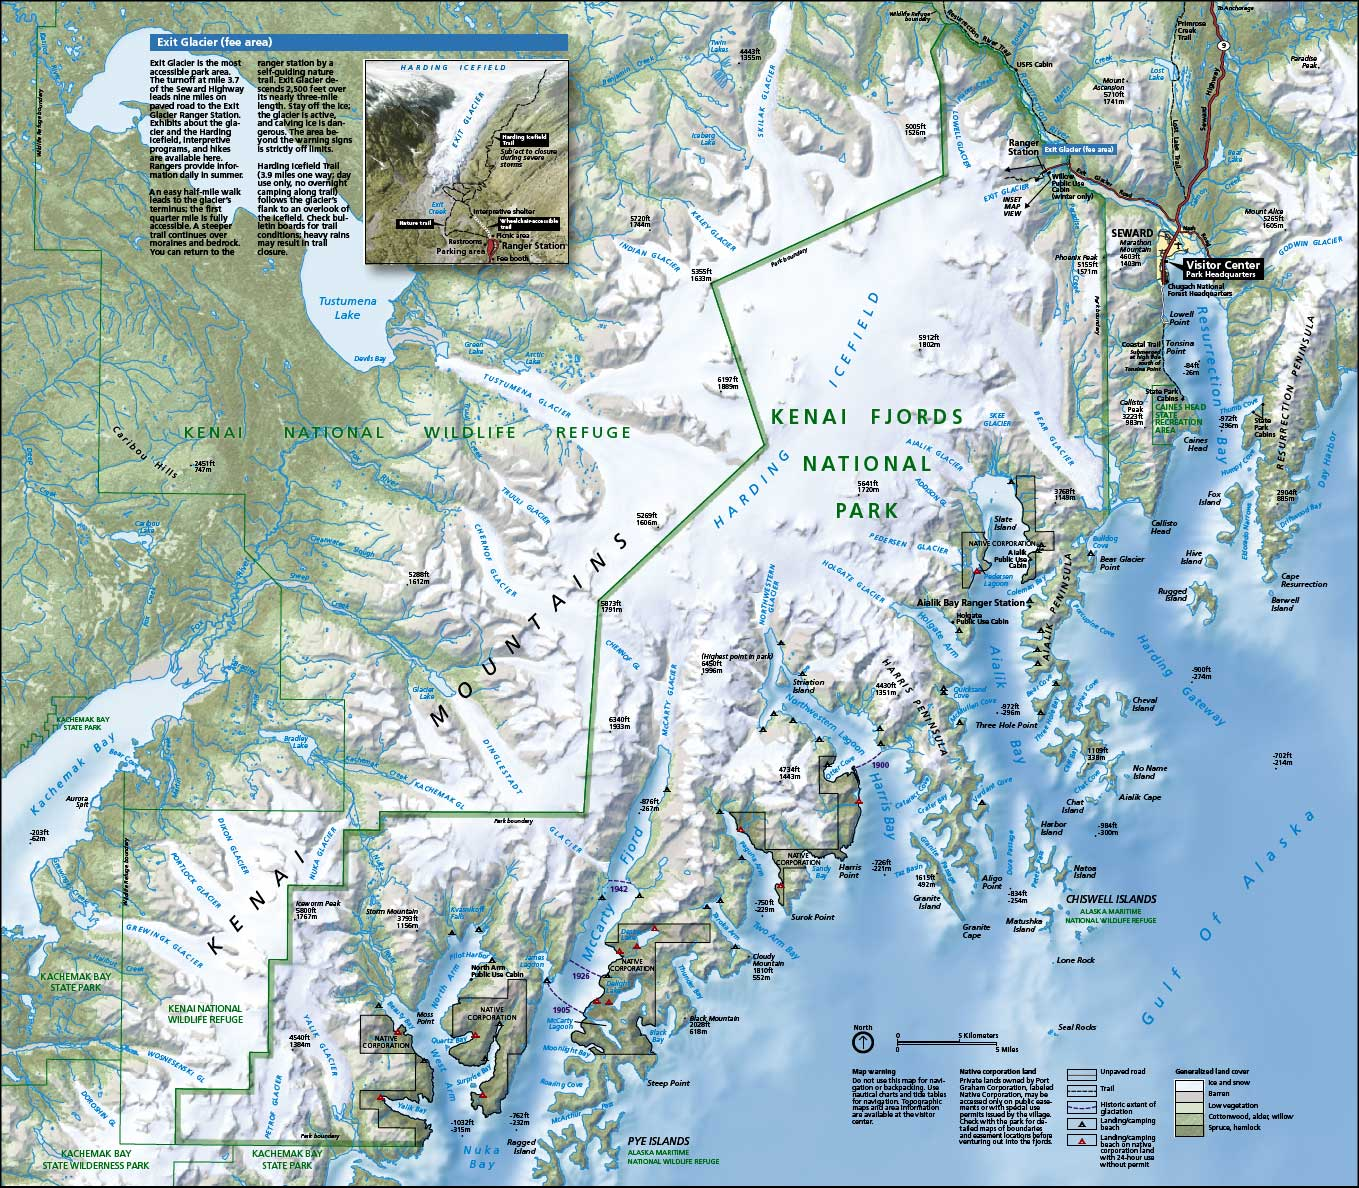 Kenai Fjords National Park National Park Service Sites in Alaska